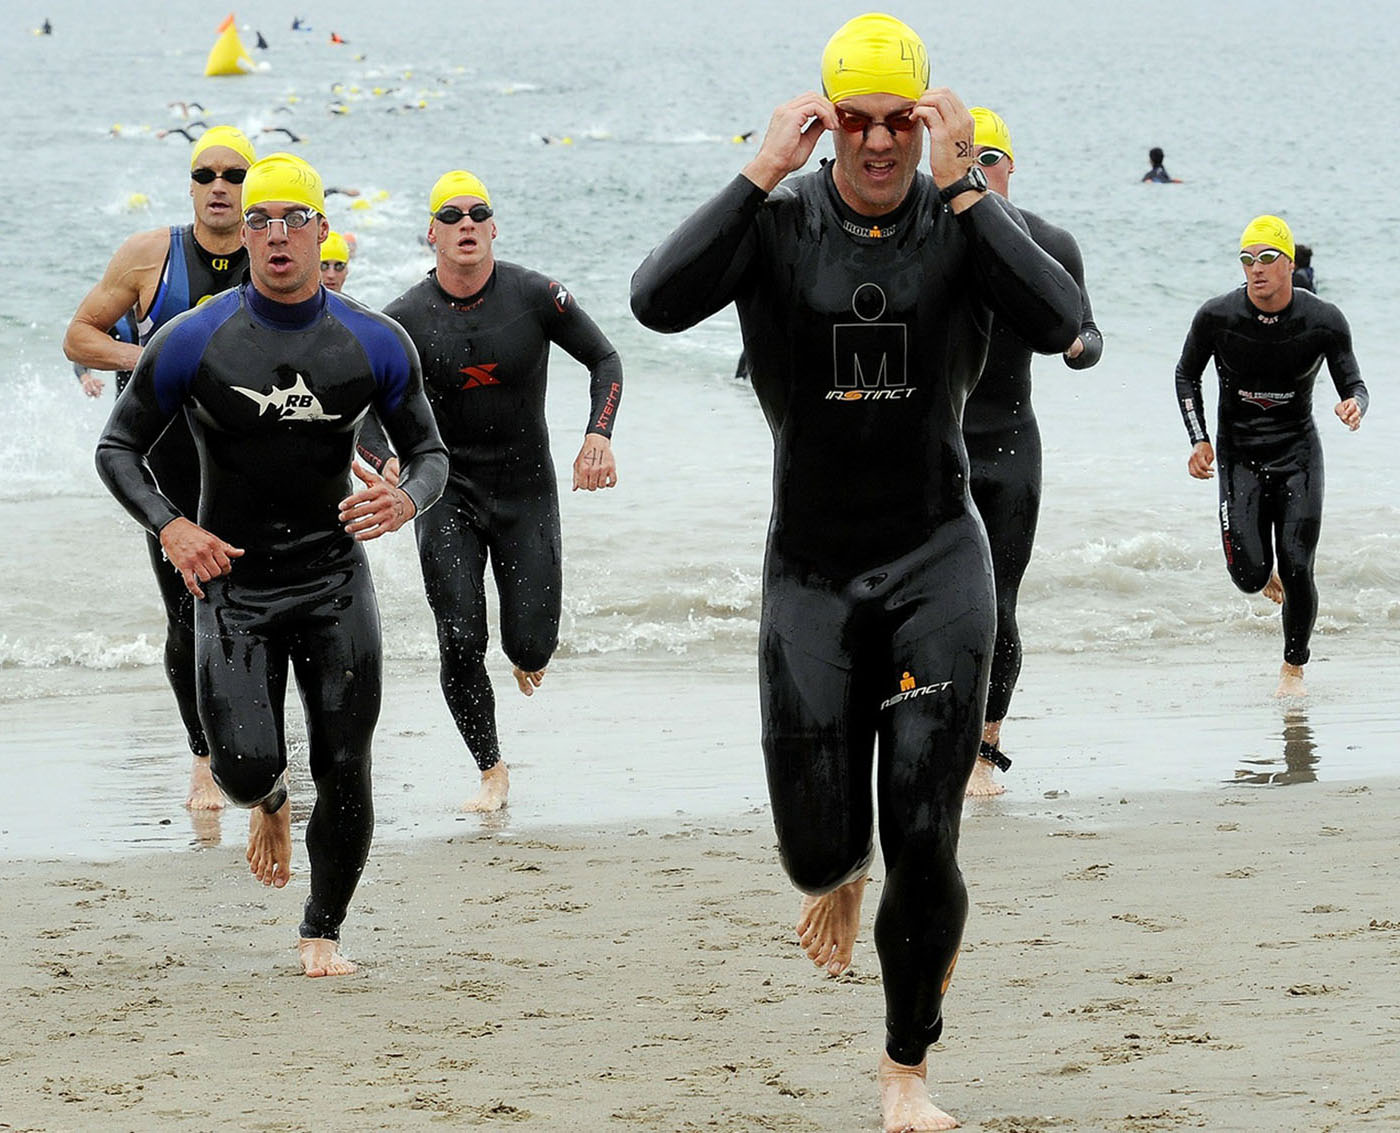 Triathlon runners on the beach